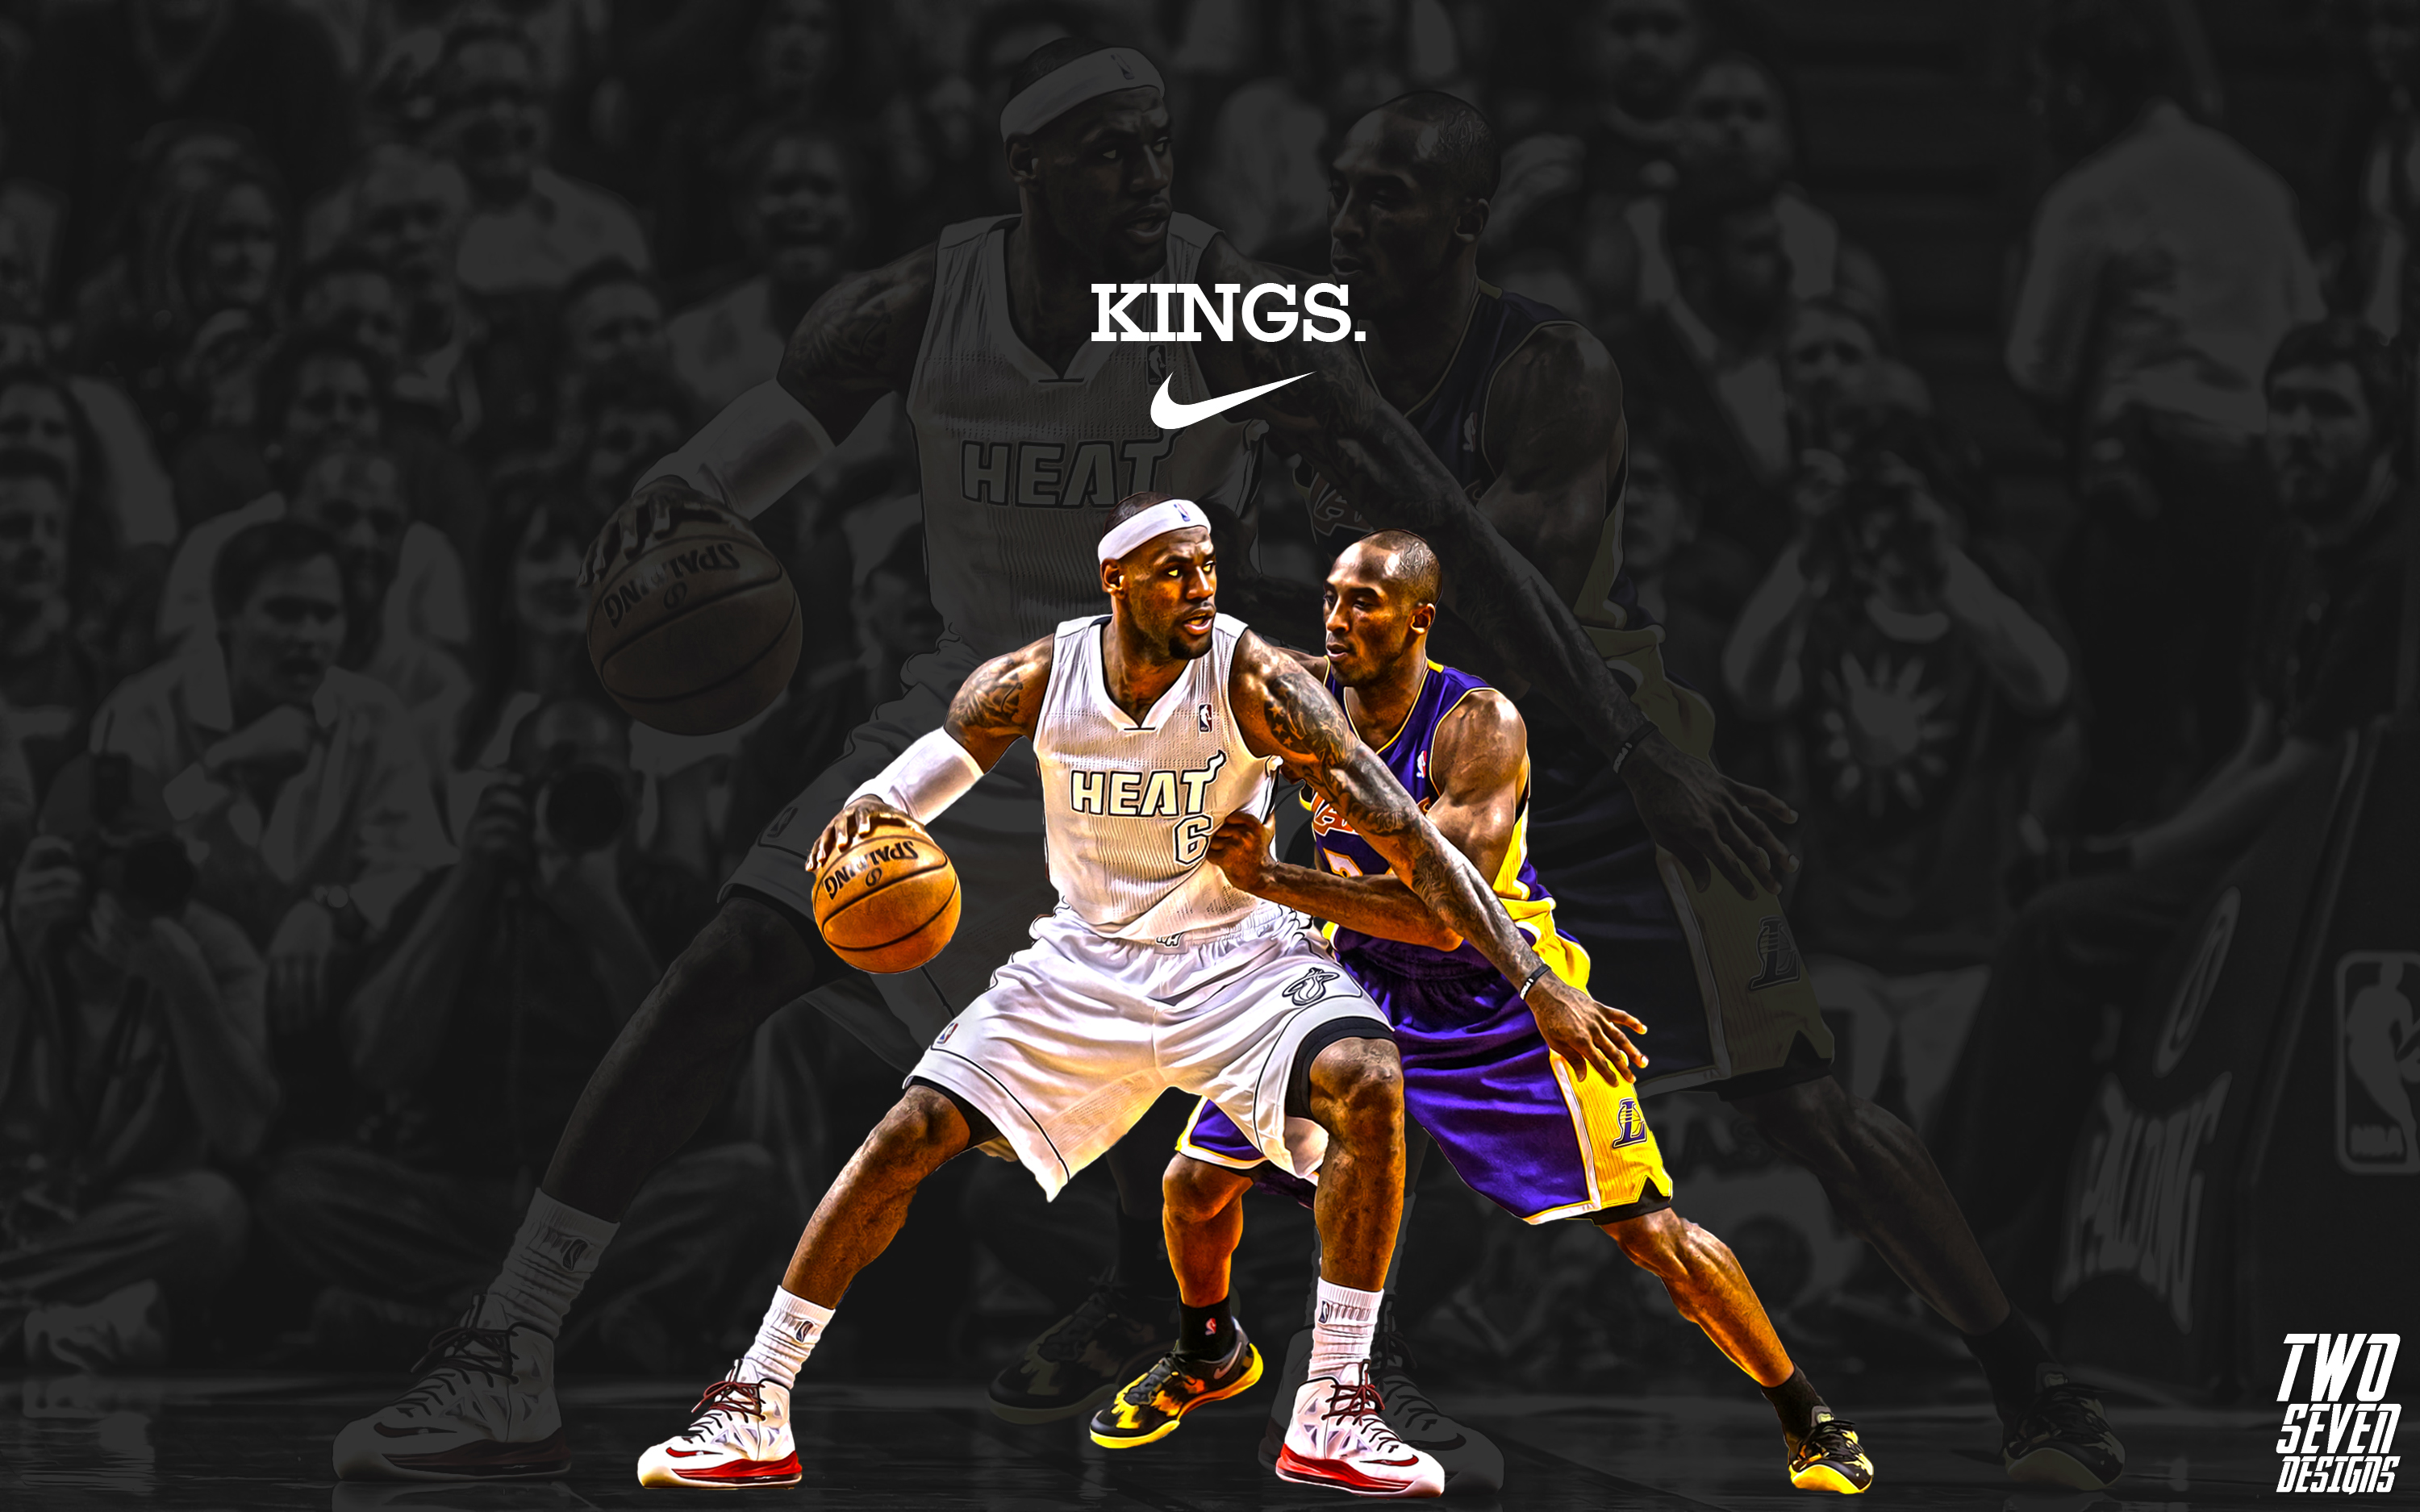 lebron v kobe Cleveland cavaliers' lebron james and los angeles lakers' kobe bryant, shown in a game last season, did serious nba work through age 30 lebron turned 31.